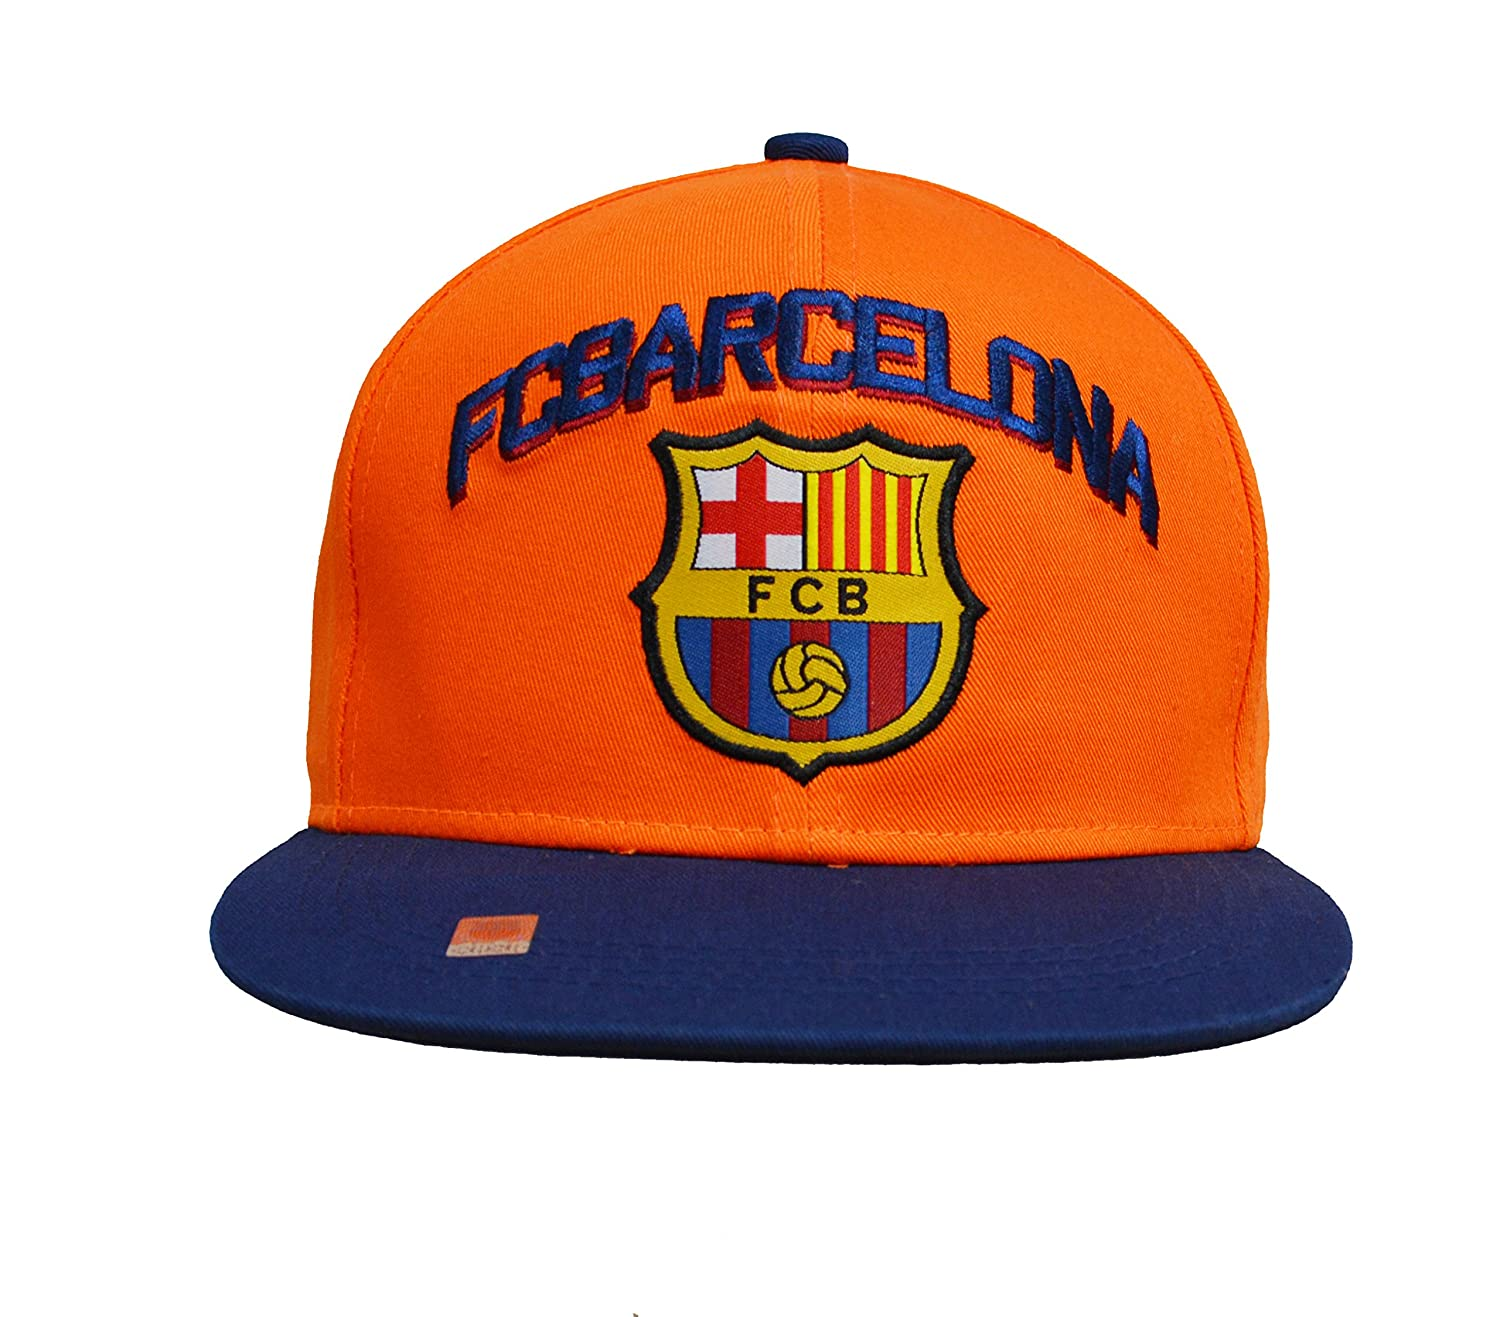 Amazon.com   Fc Barcelona Snapback Adjustable Cap Hat - Blue - Orange - Red  New Season   Sports   Outdoors 287a7172cff